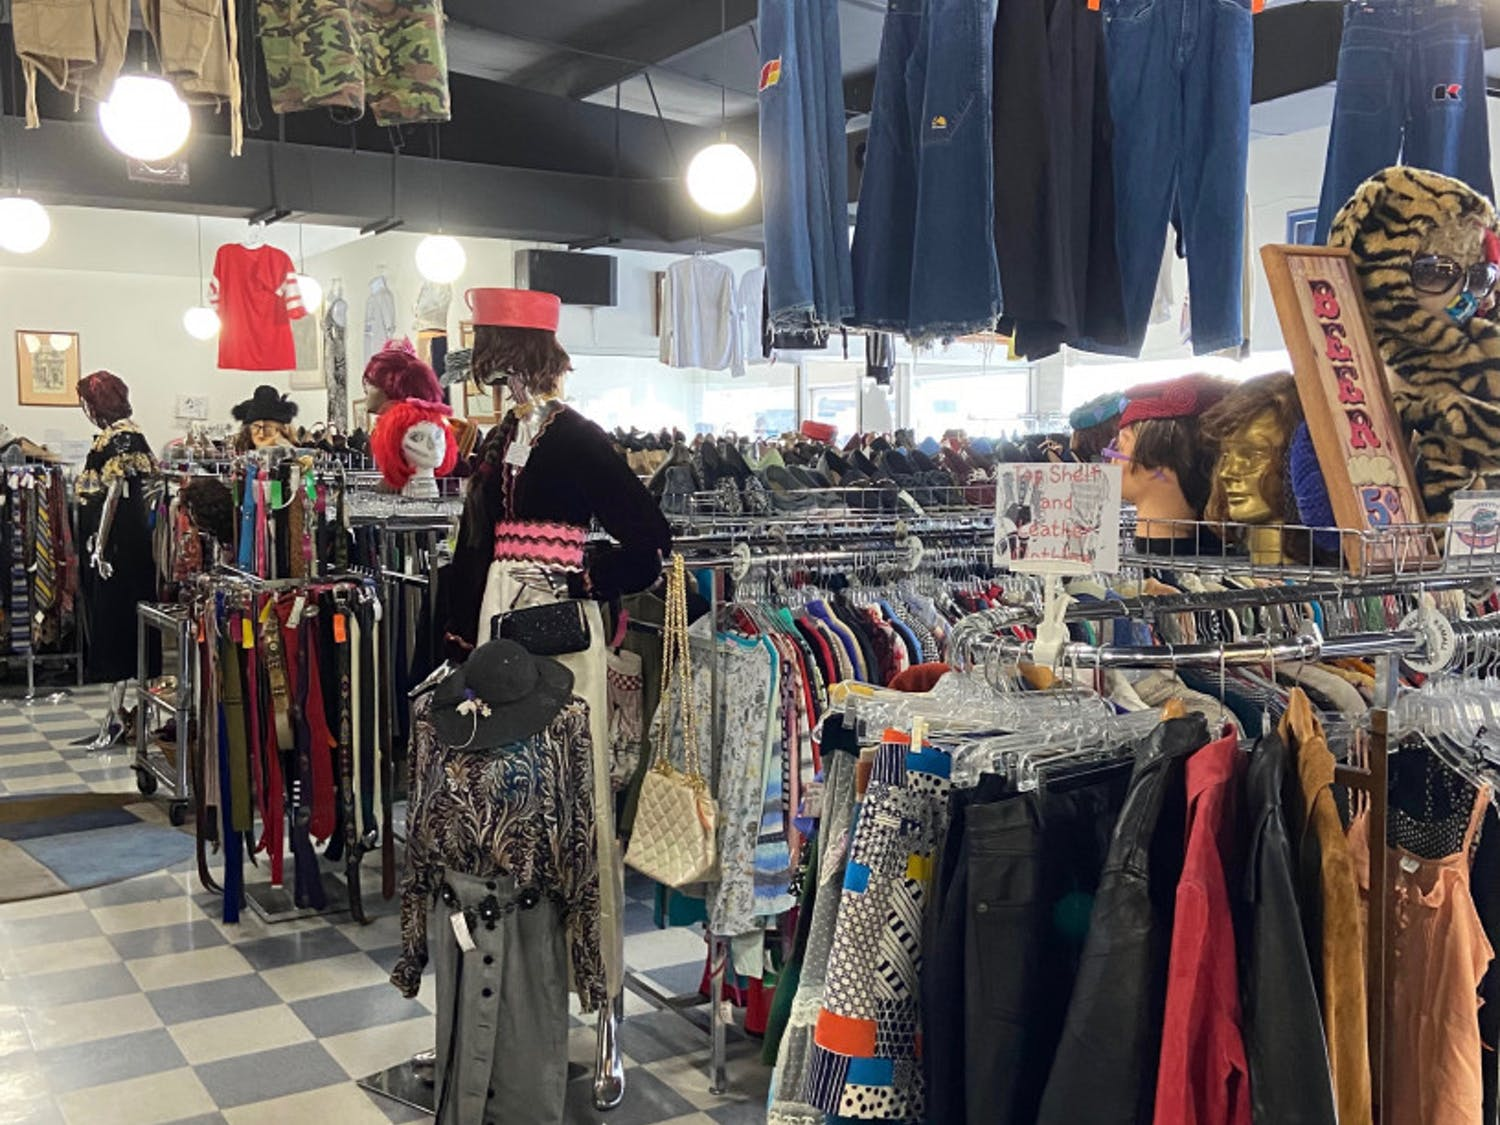 The Gainesville thrift store, Flashbacks Recycled Fashions, located at 220 NW 8th Ave., has seen a surprising burst in customers wanting to expand their style following this year's COVID-19 pandemic shut downs.